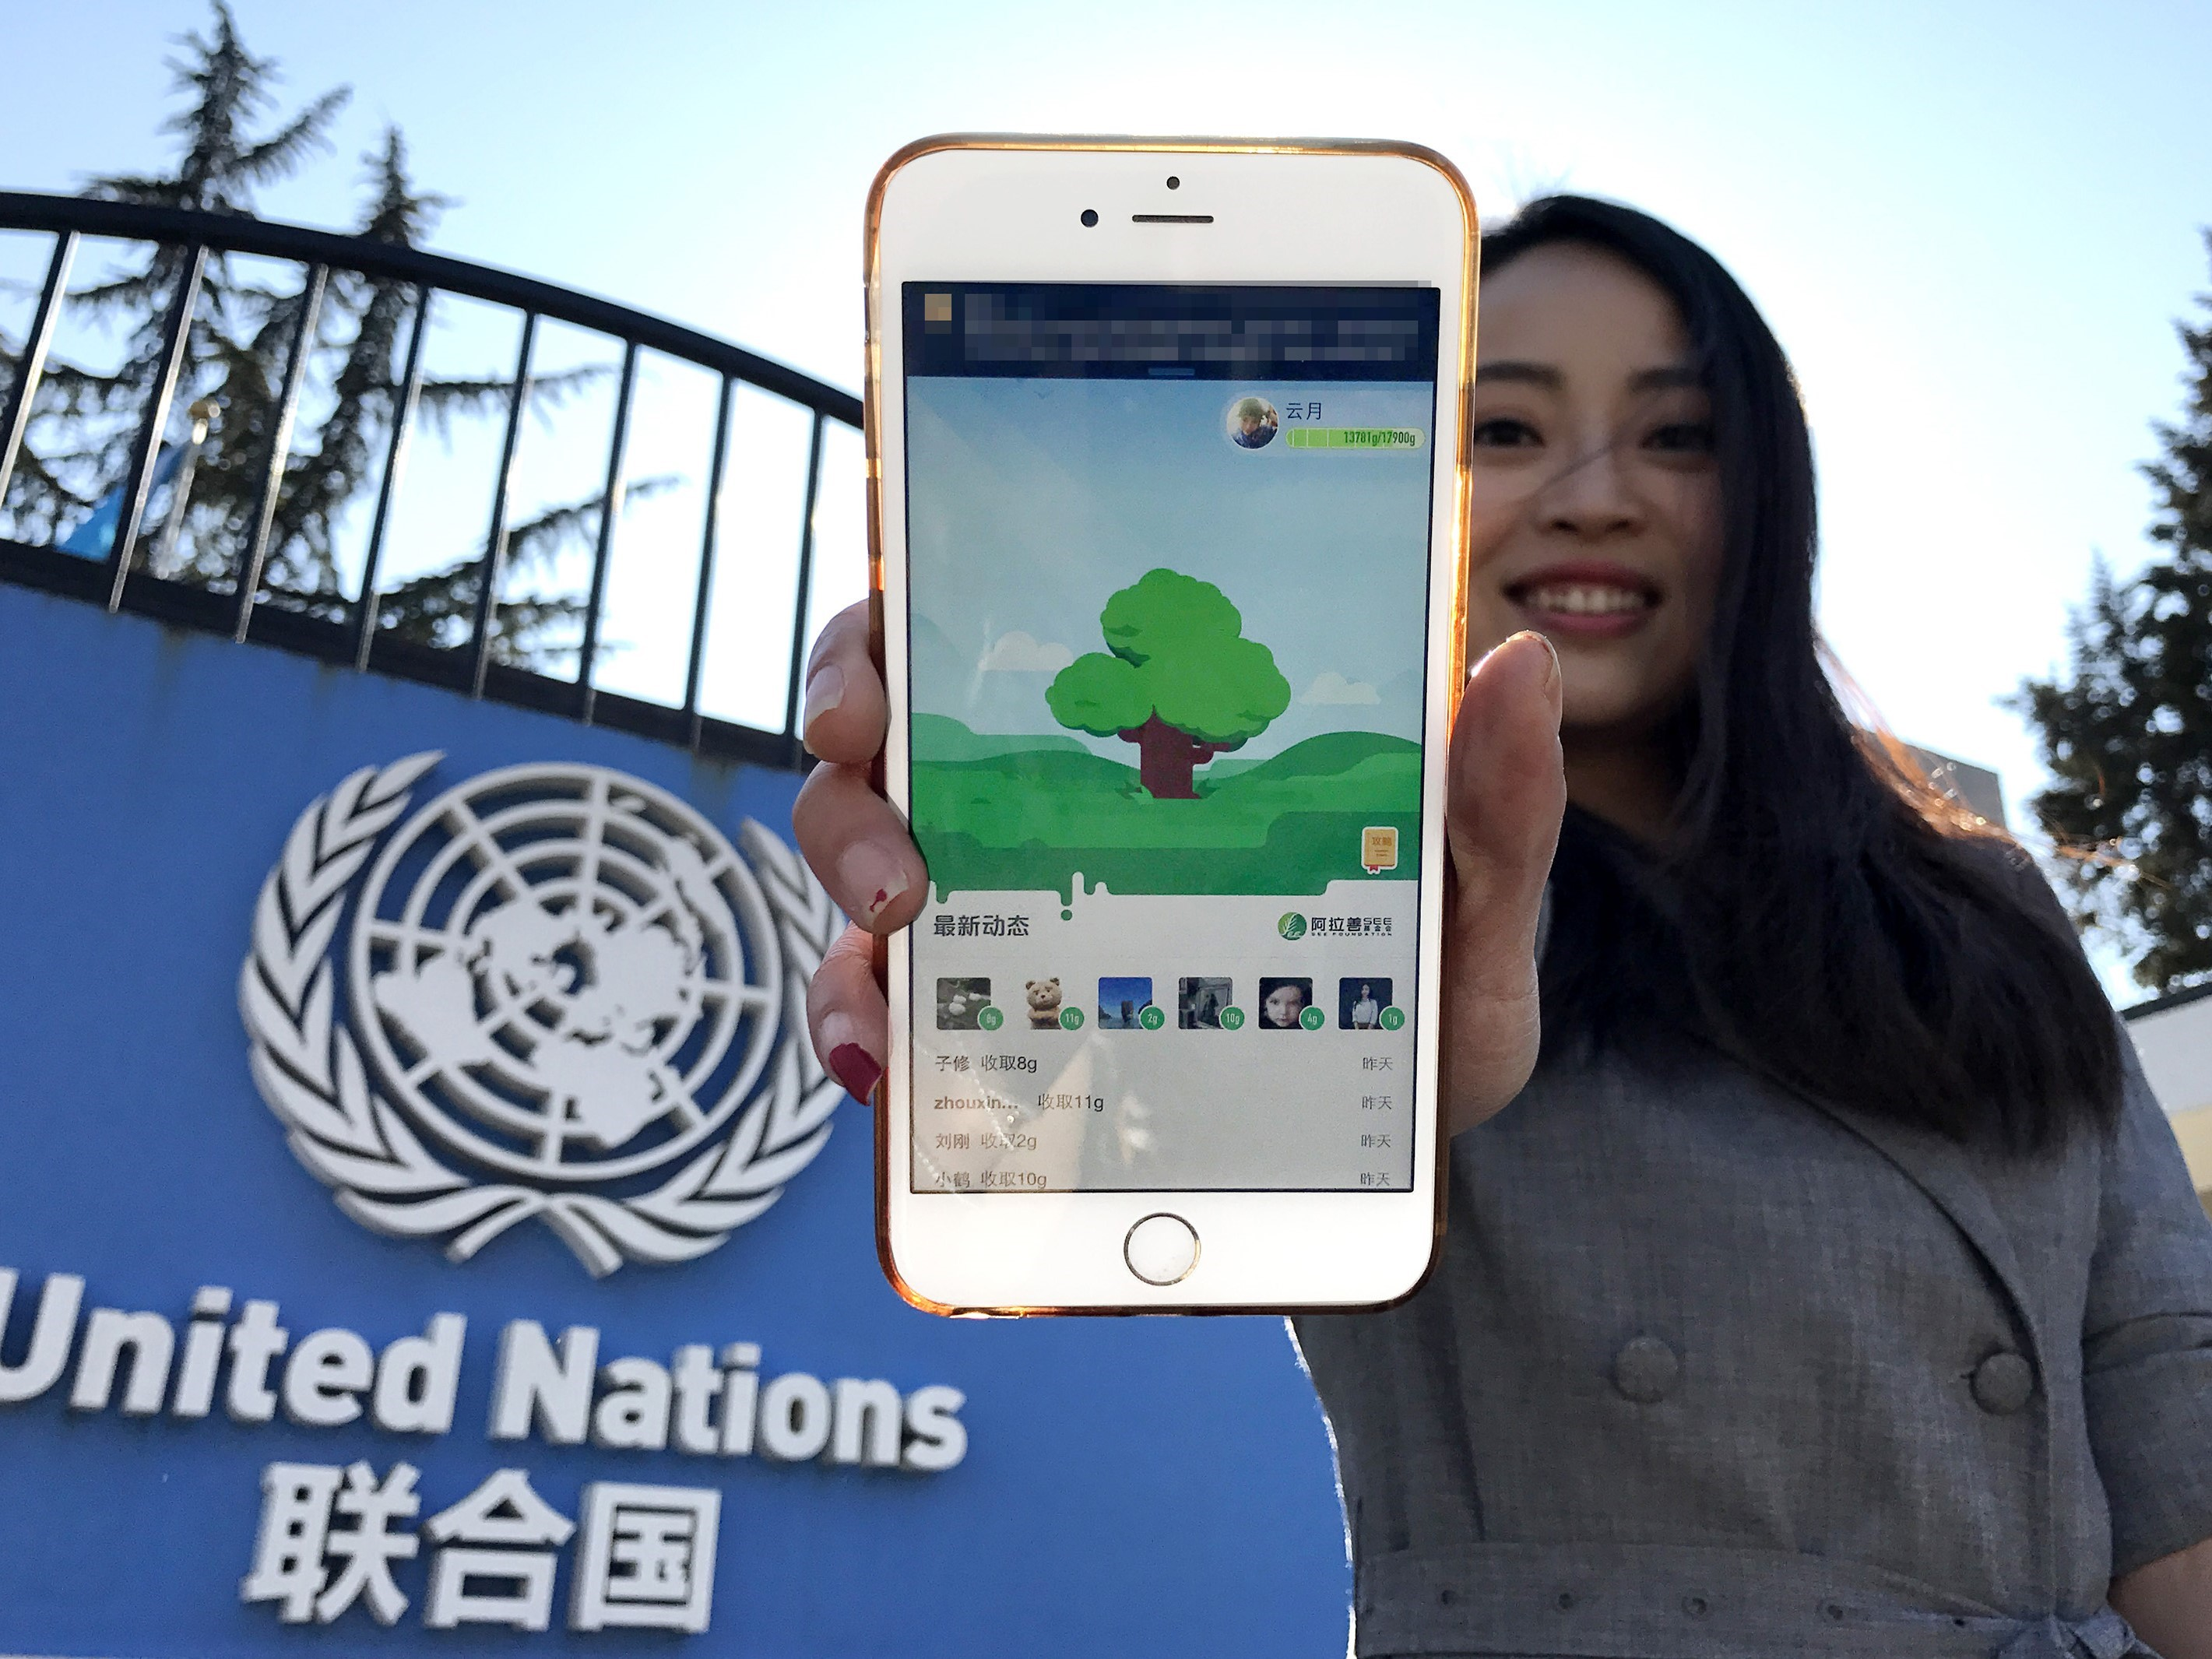 Ant Financial's Green Digital Initiative: Ant Forest